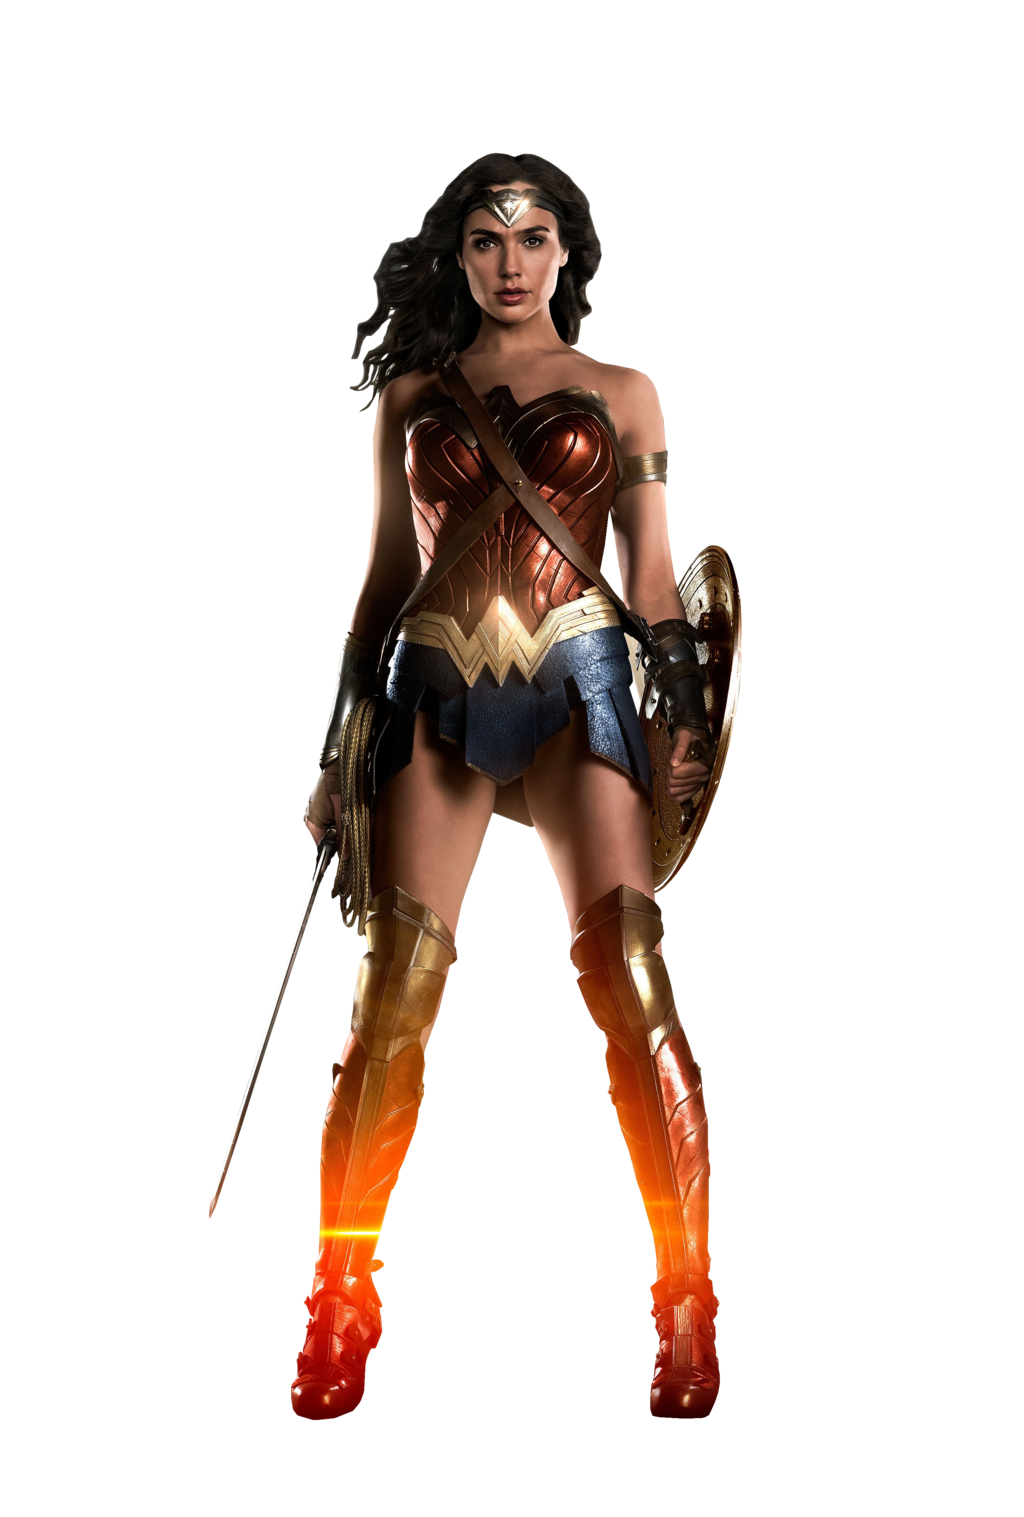 wonder woman poster trickarrowdesigns deviantart #16475